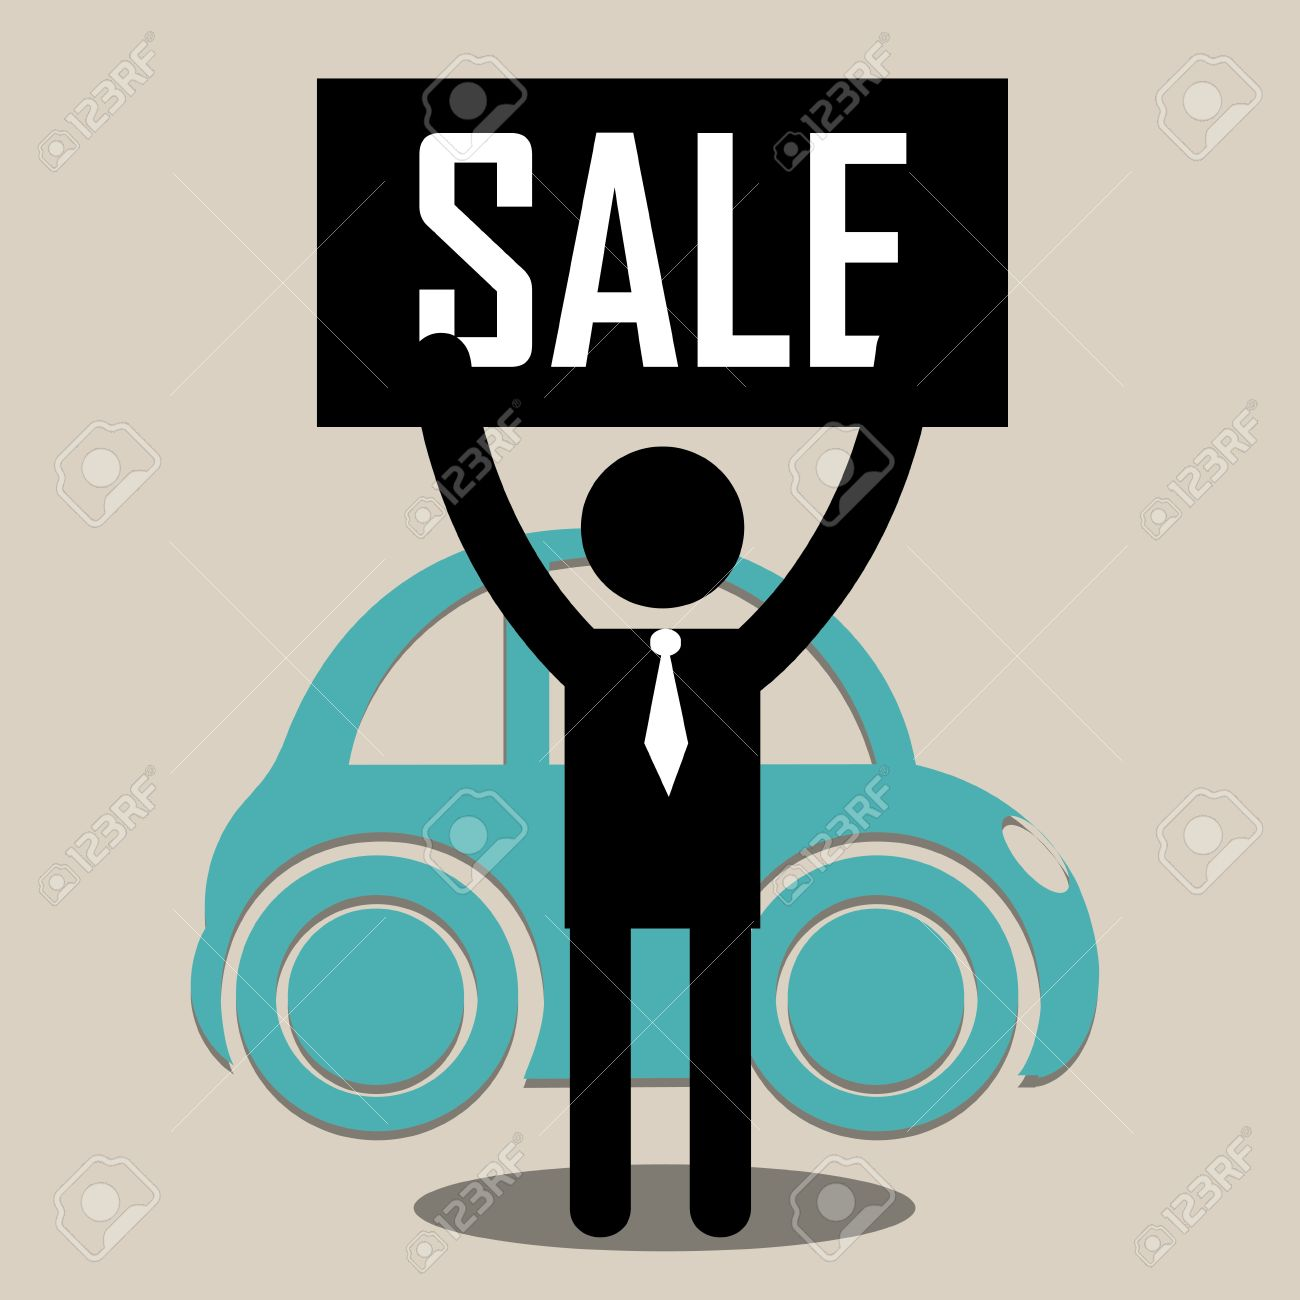 Seller With Sale Cartel Trying To Sell A Classic Car Royalty Free ...